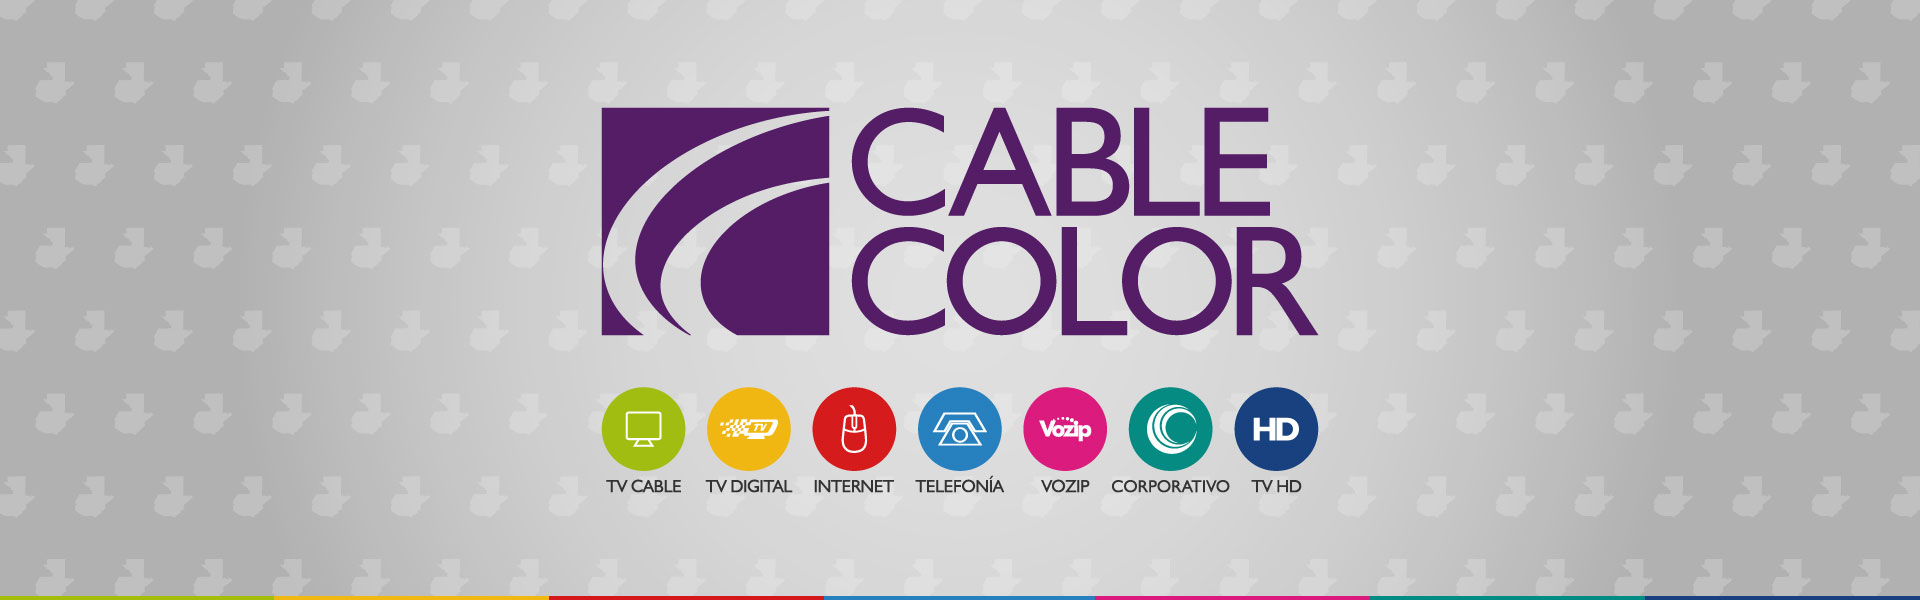 Cable Color Quote